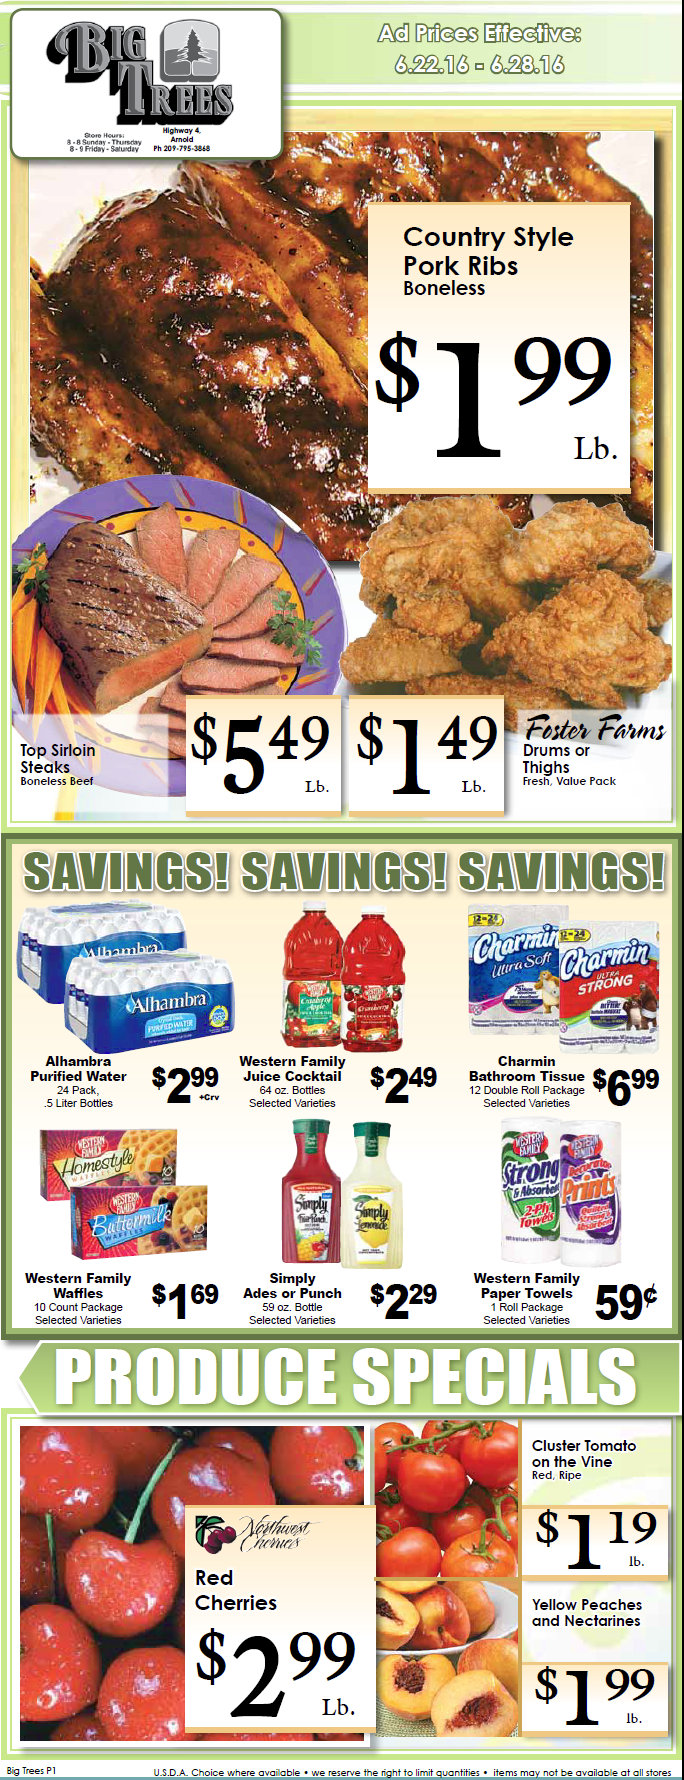 Big Trees Market Weekly Ad Through June 28th